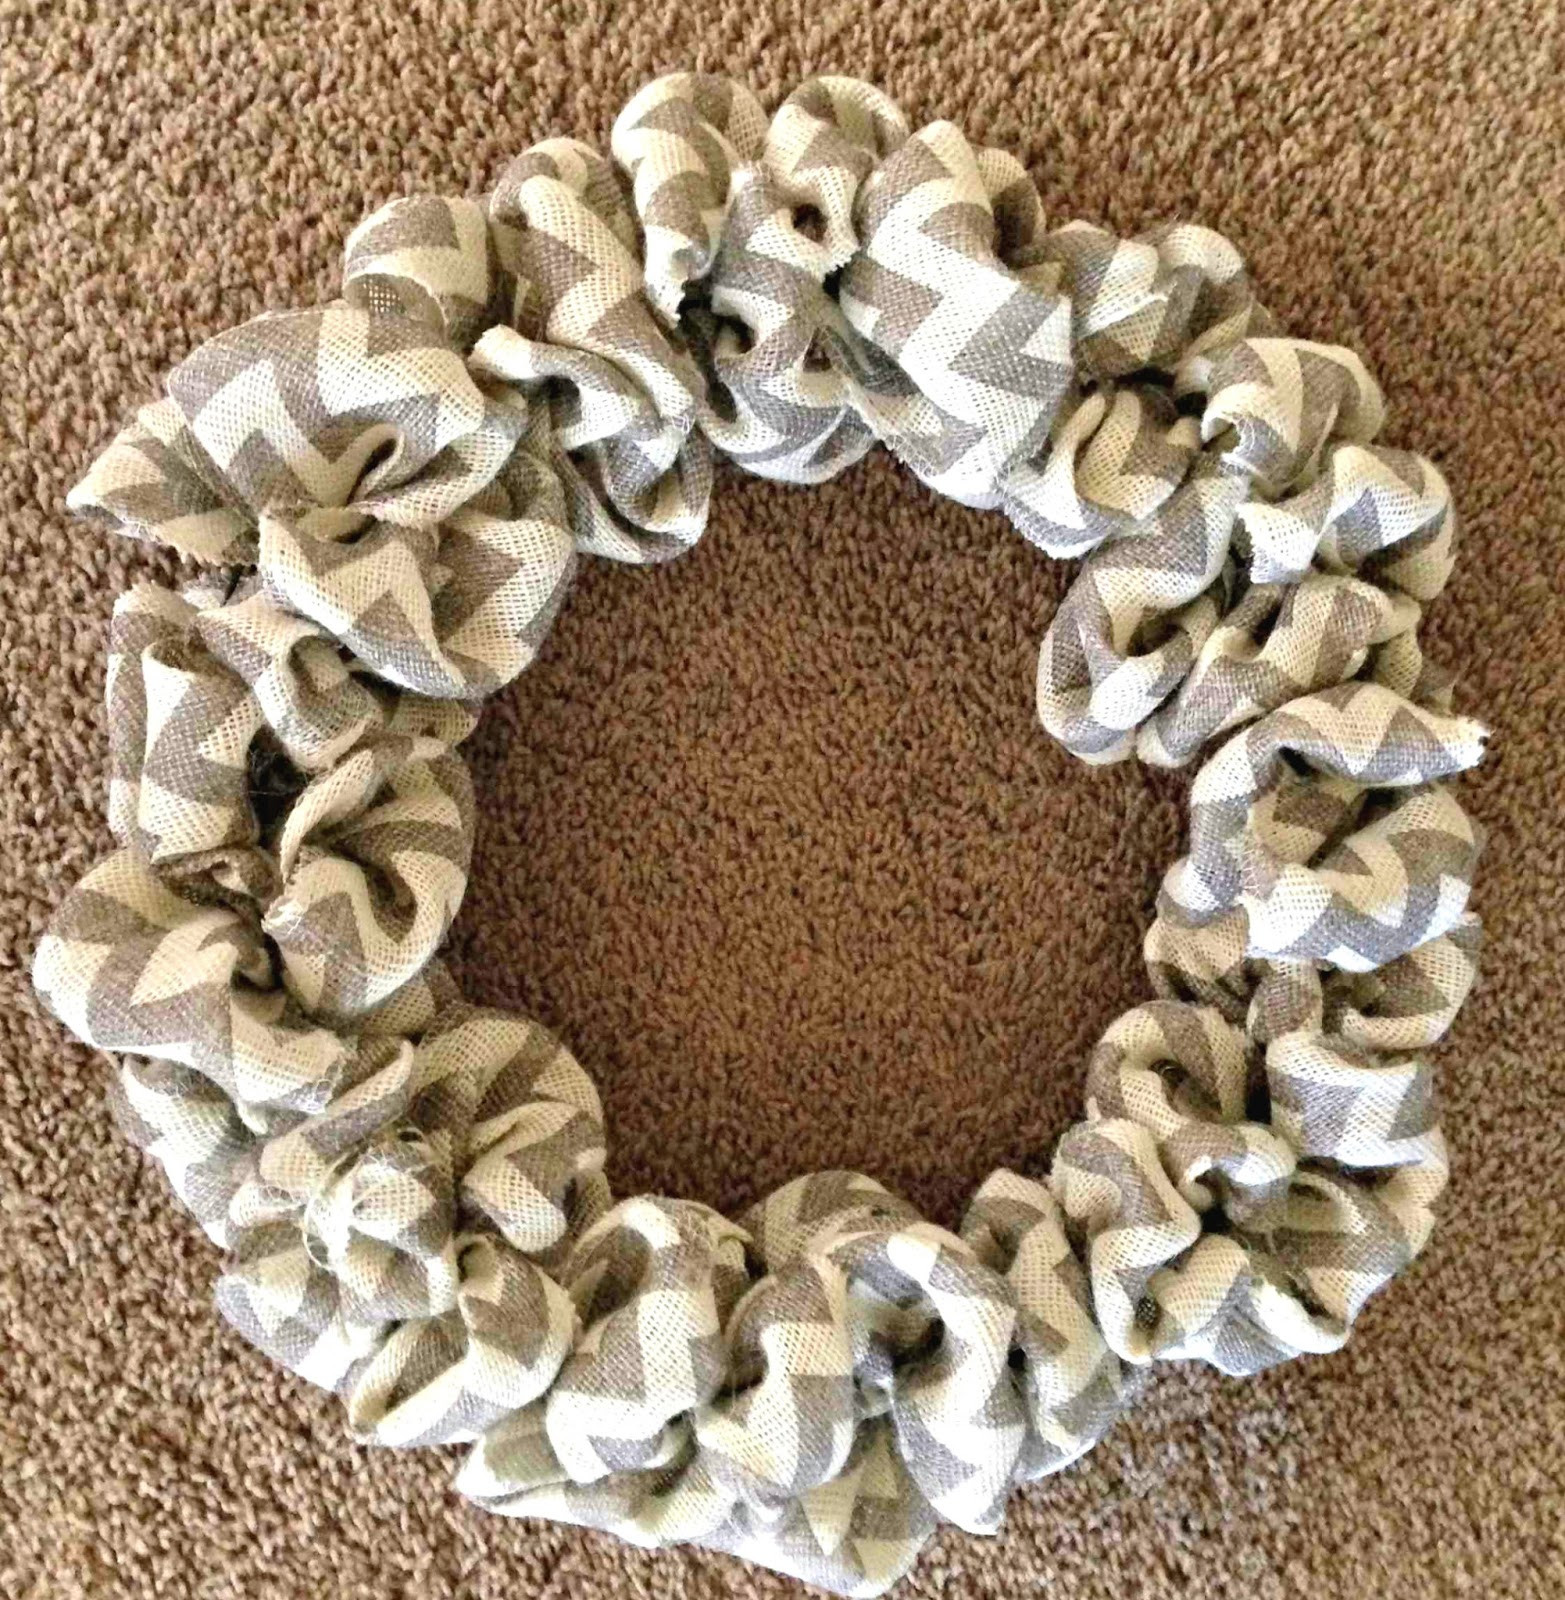 Best ideas about Burlap Wreath DIY . Save or Pin all things katie marie DIY Burlap Wreath Now.